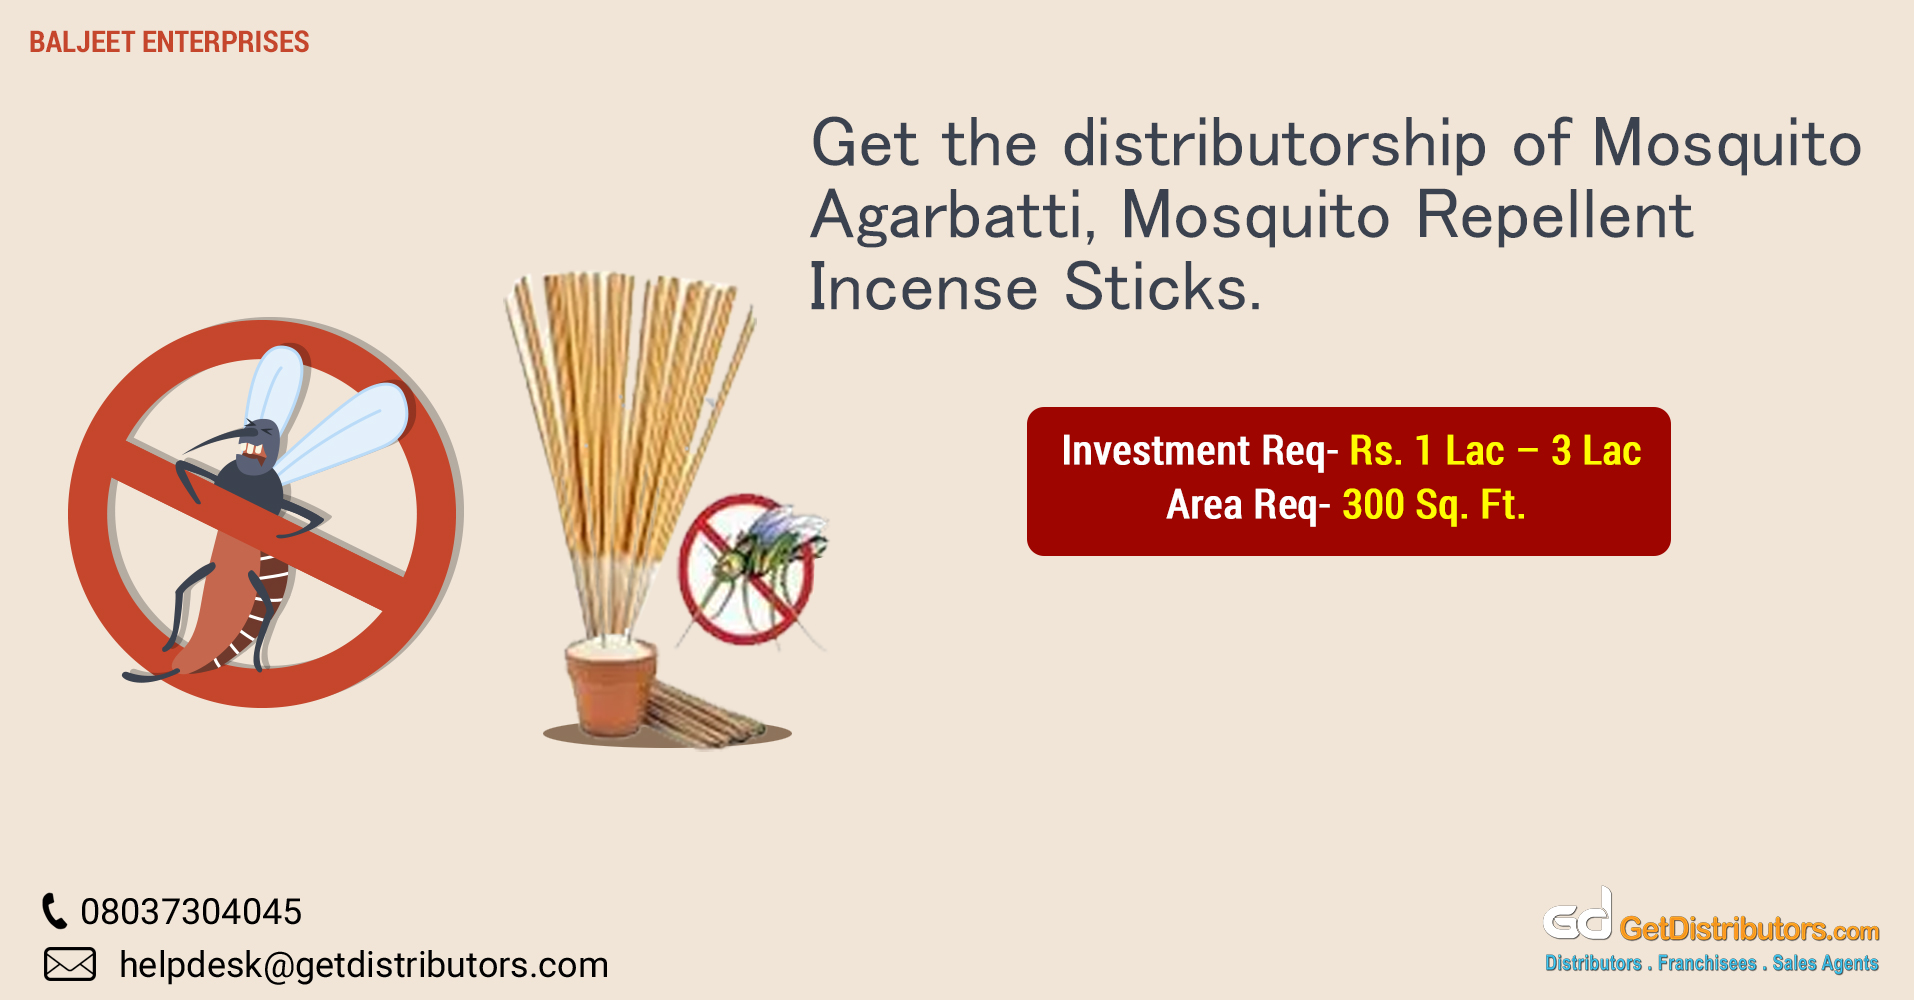 Incense sticks and agarbattis to keep mosquitos at bay